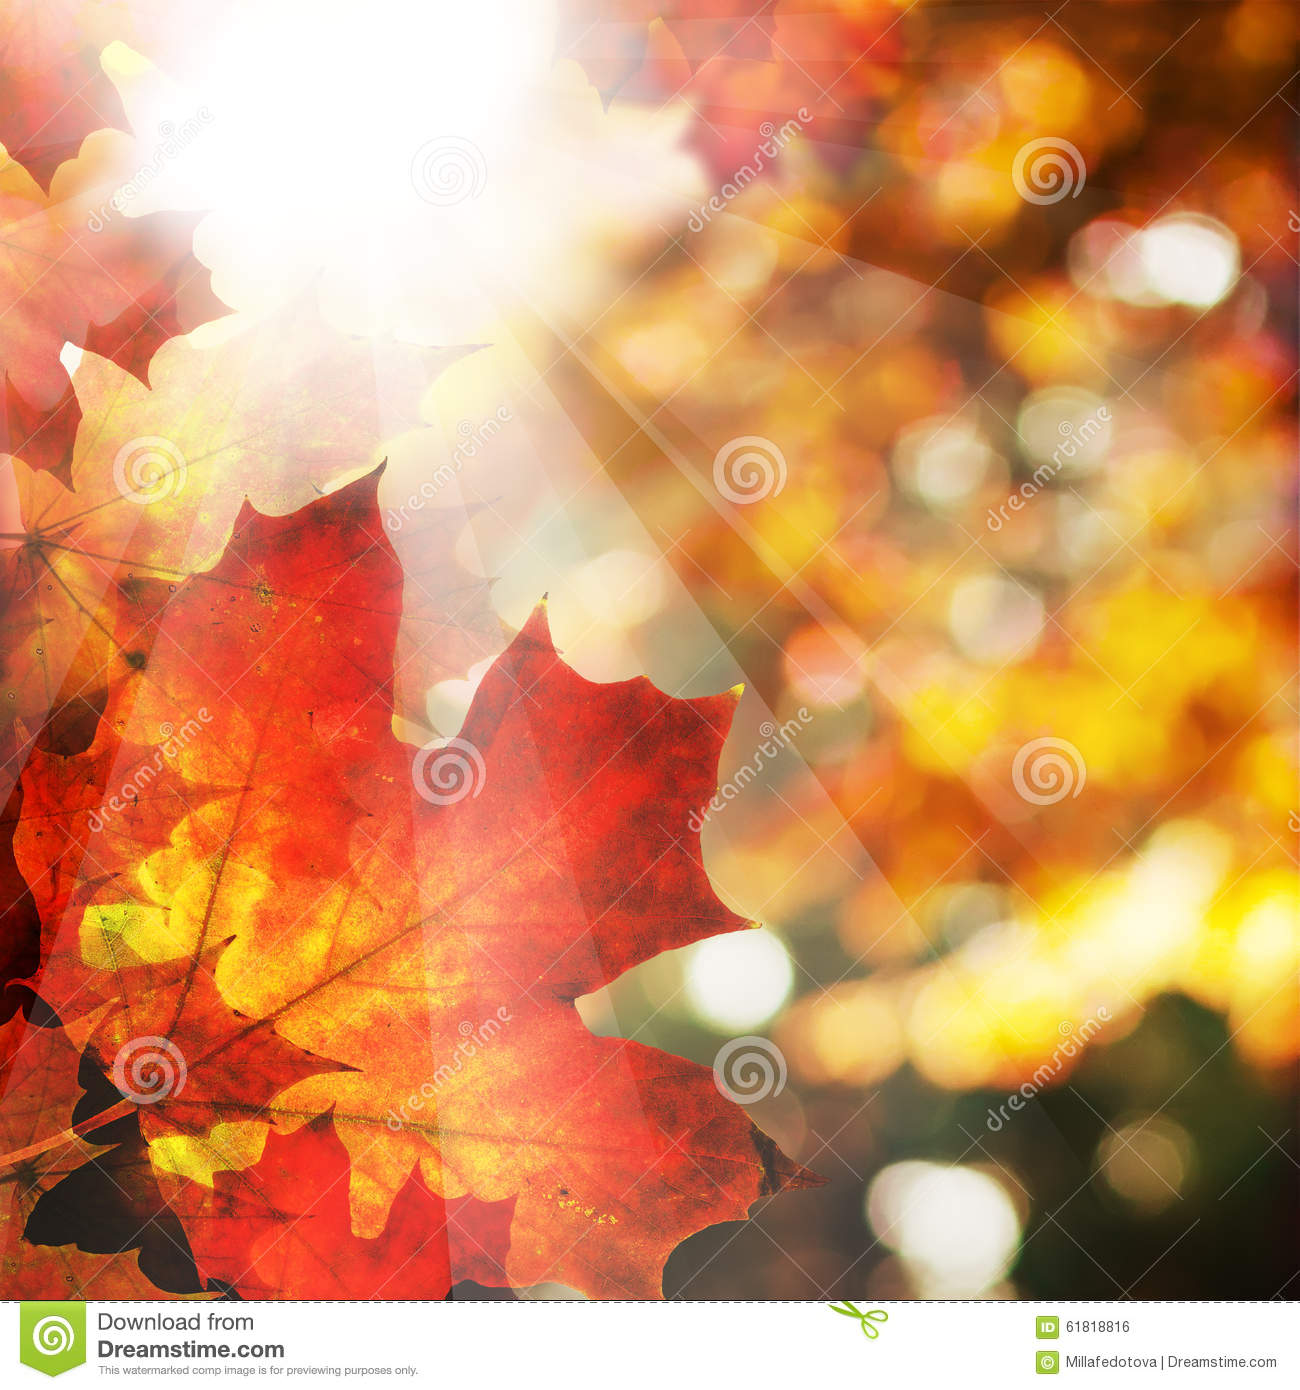 Autumn Background With Maple Leaves. Abstract Fall Border